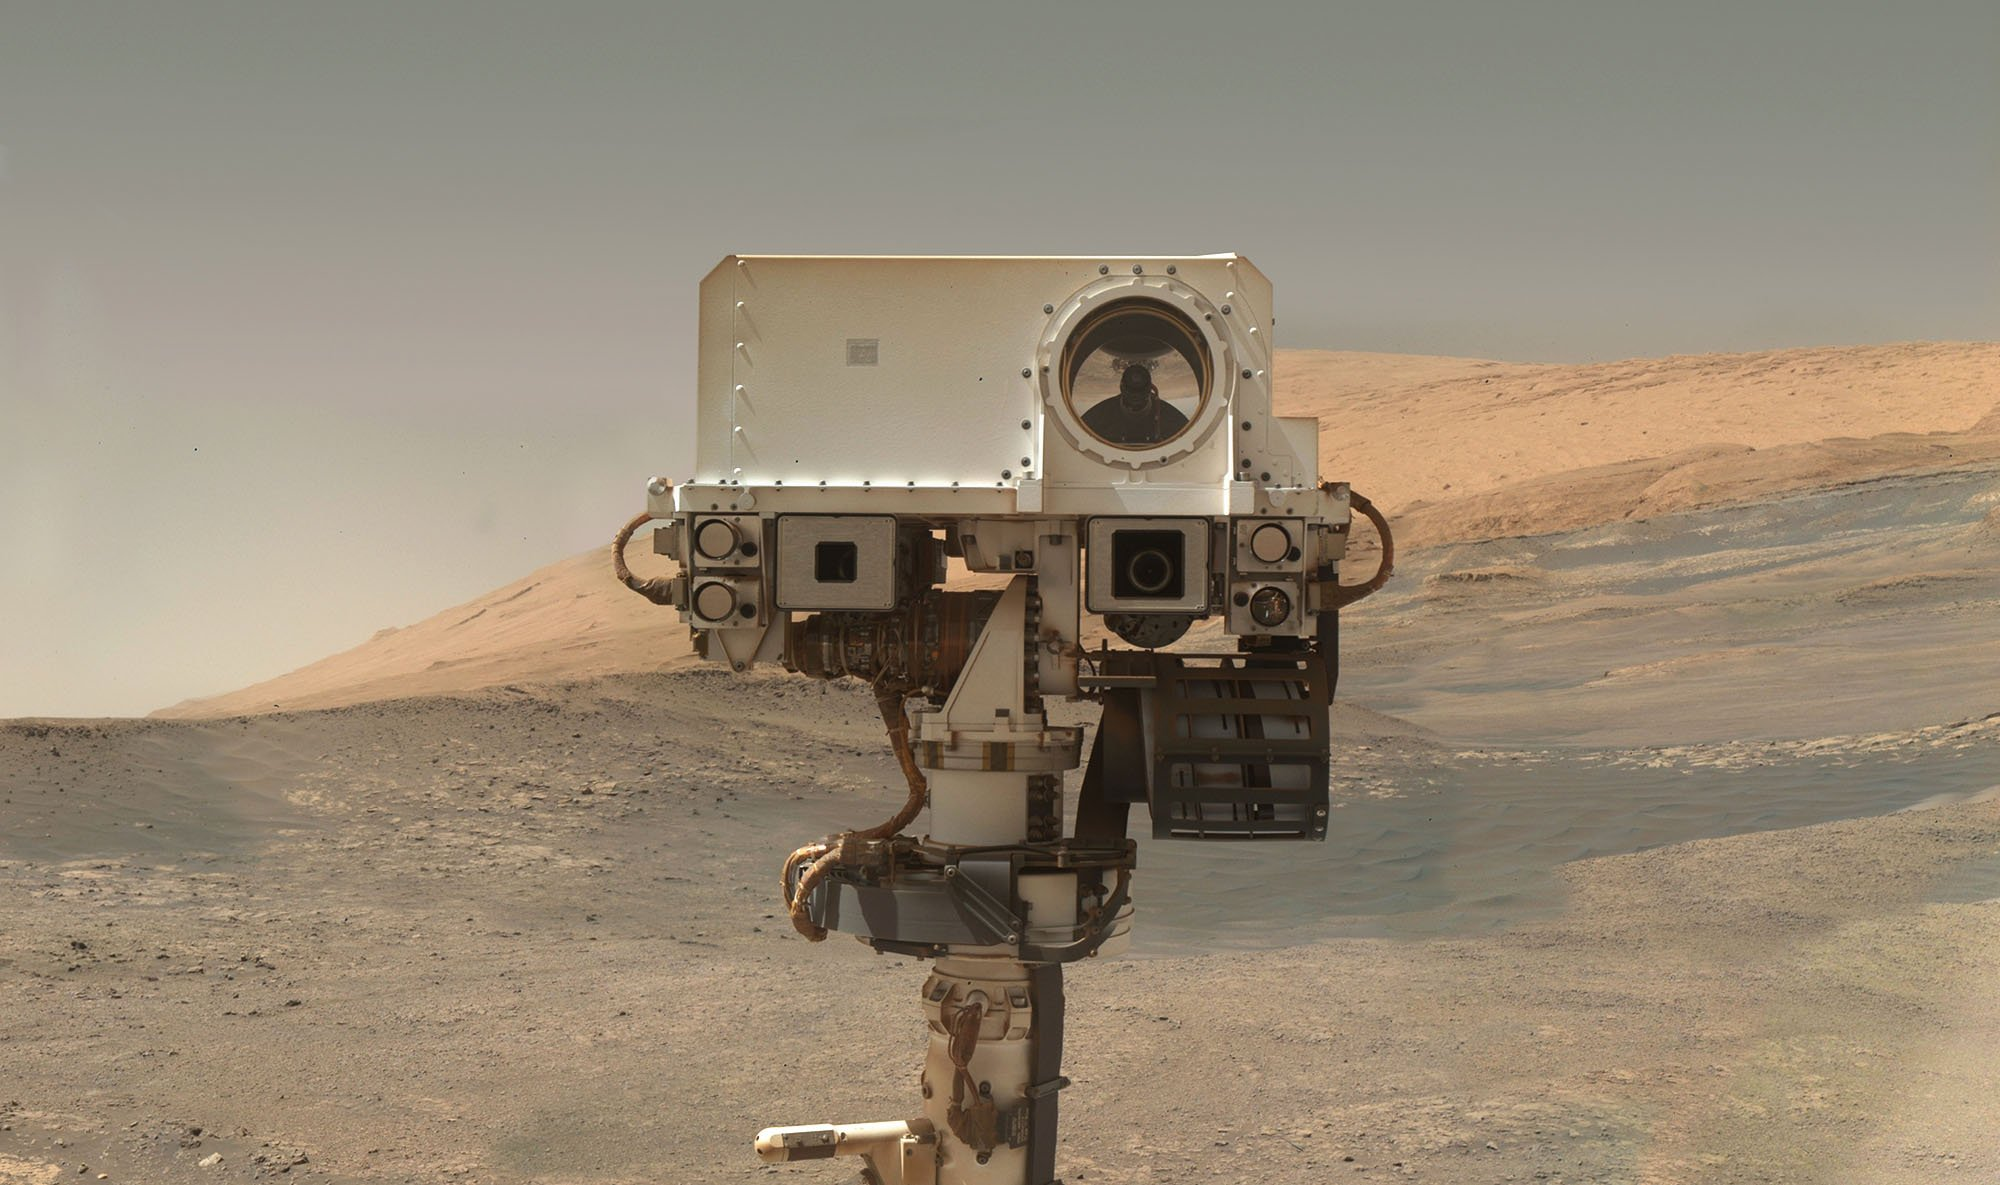 curiosity rover pictures - HD 2000×1185